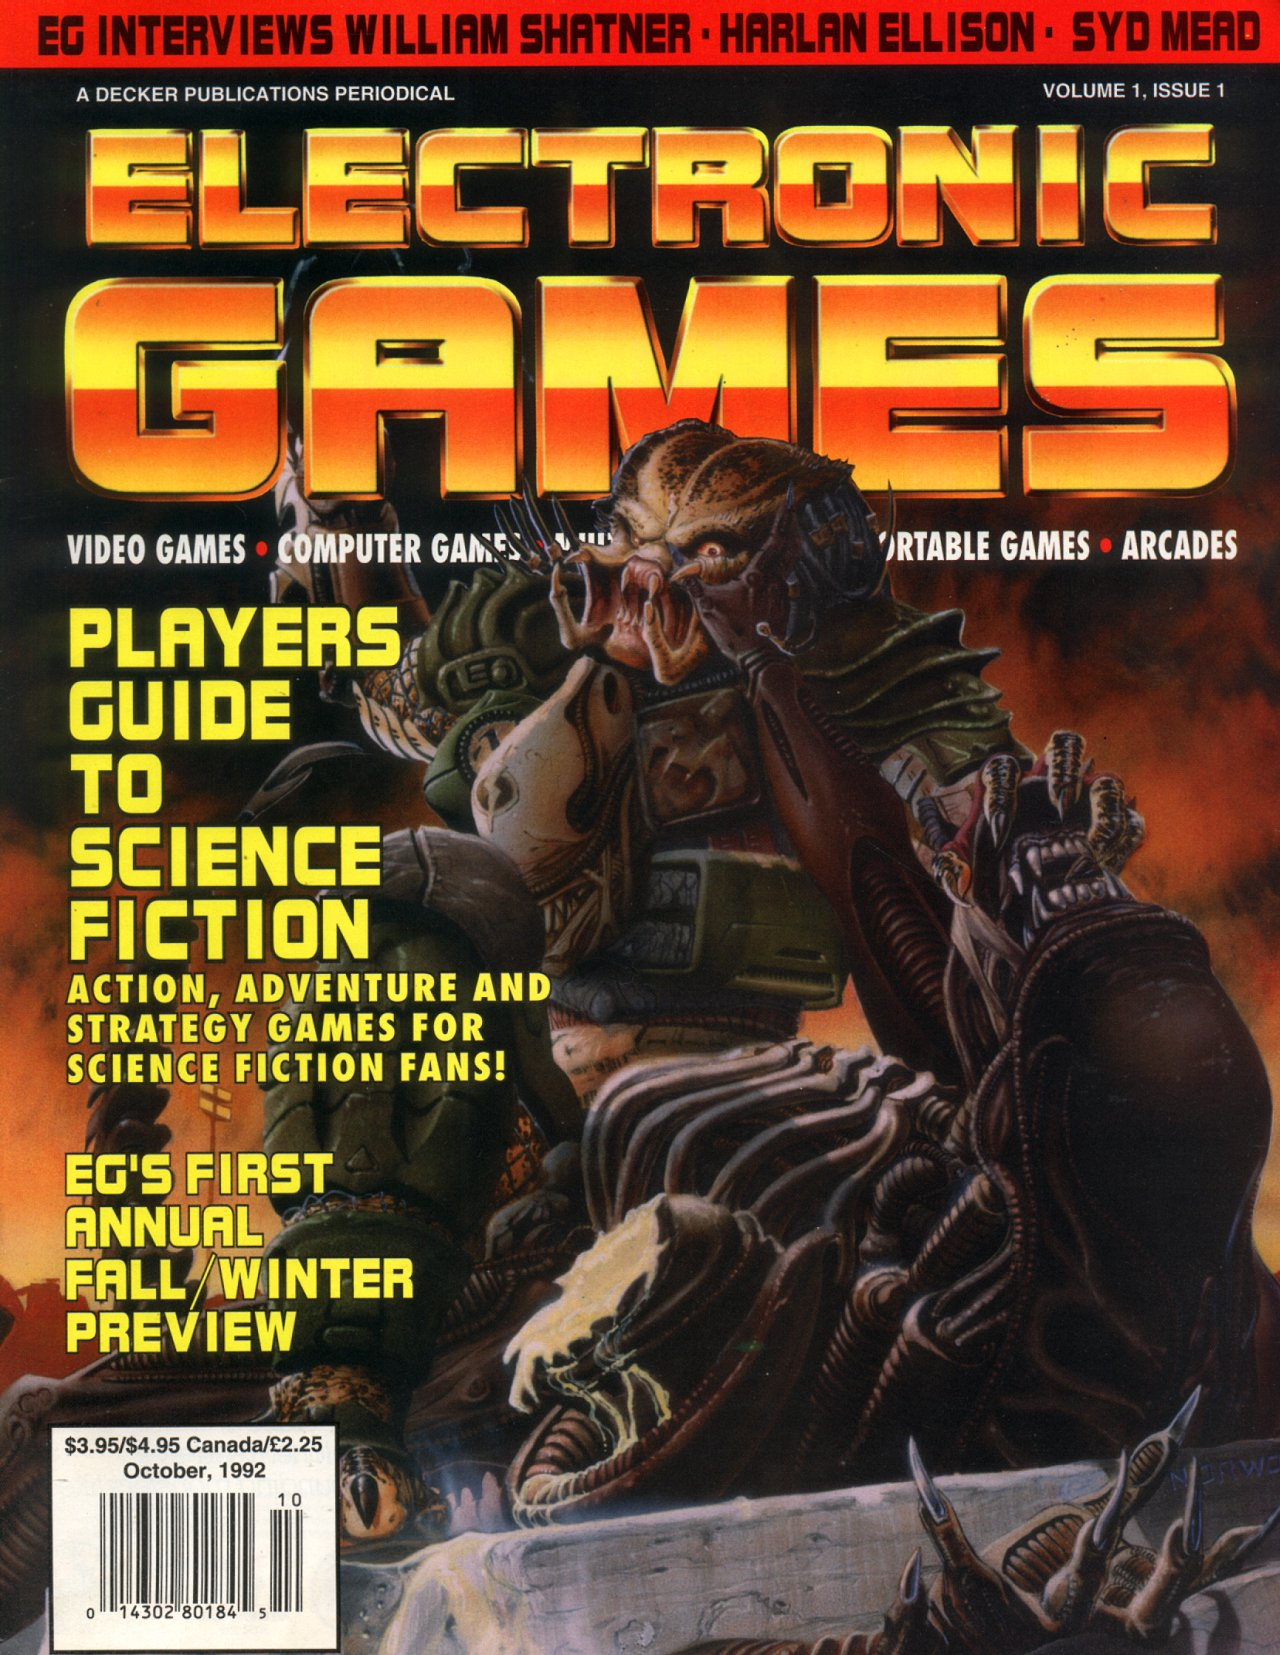 Electronic Games October 1992 Volume 1, Issue 1 Page 001 (Cover)